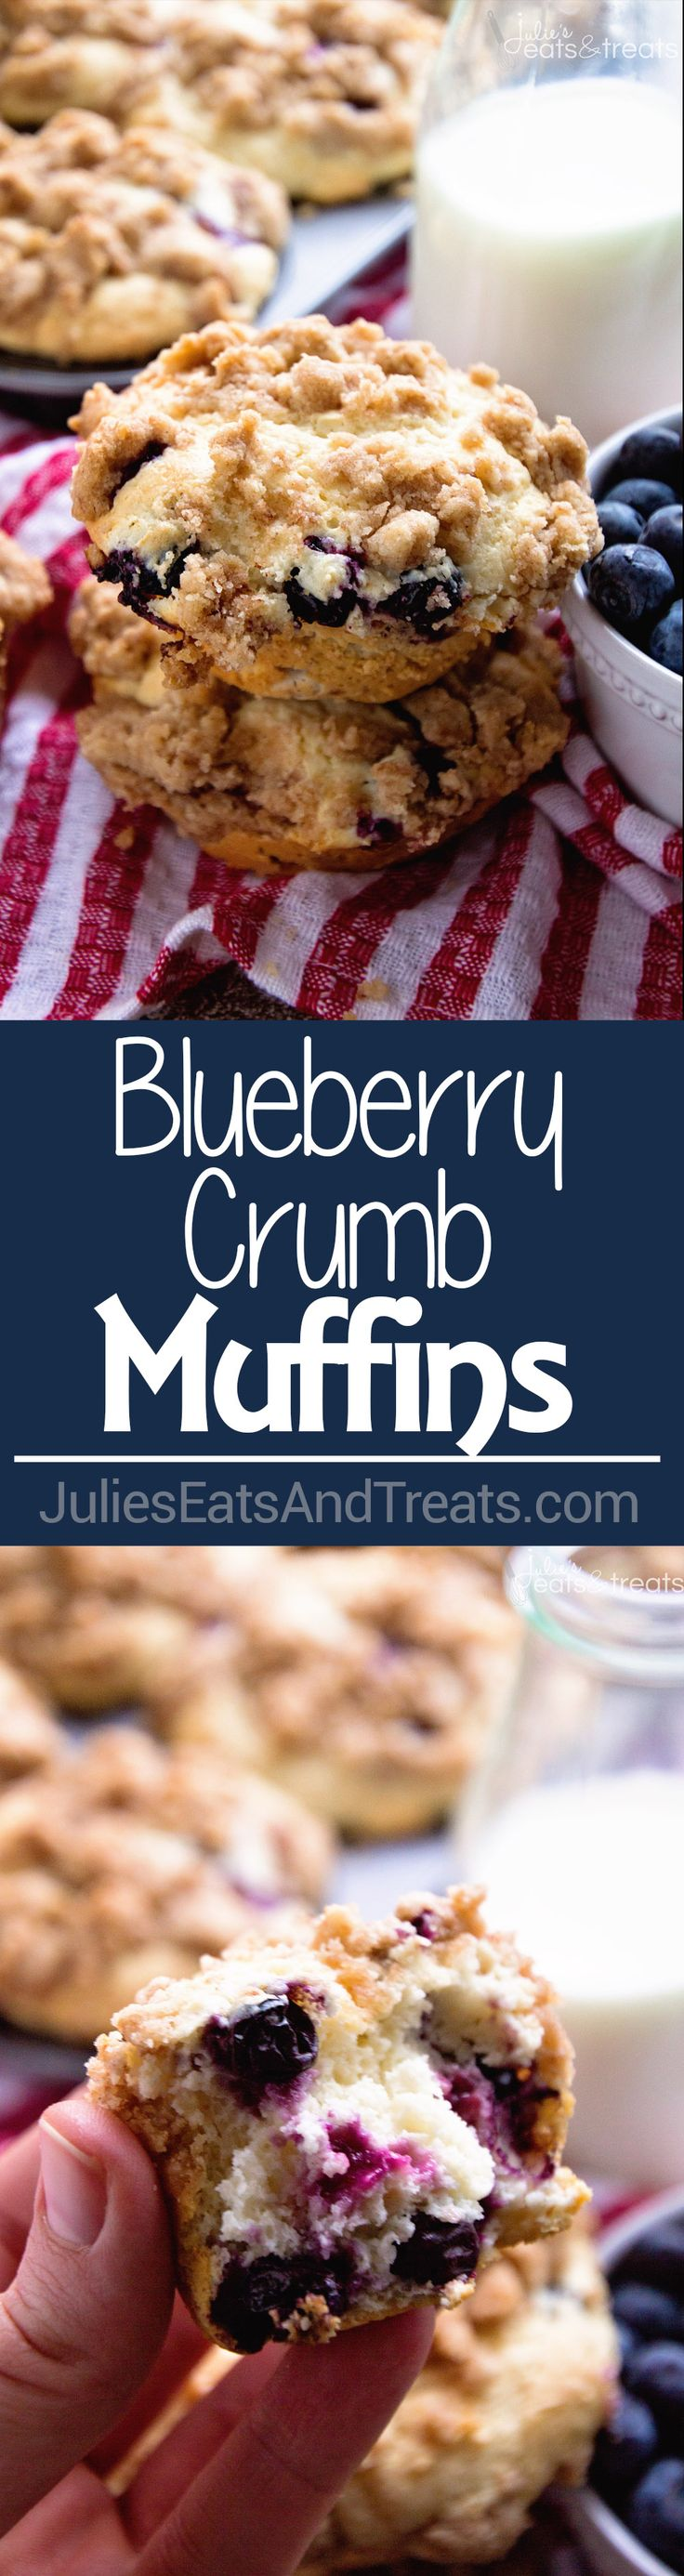 Blueberry Crumb Muffins Recipe ~ comforting, homemade blueberry muffins are the perfect morning treat, perfectly moist and delicious, bursting with juicy blueberries with a crumb topping!